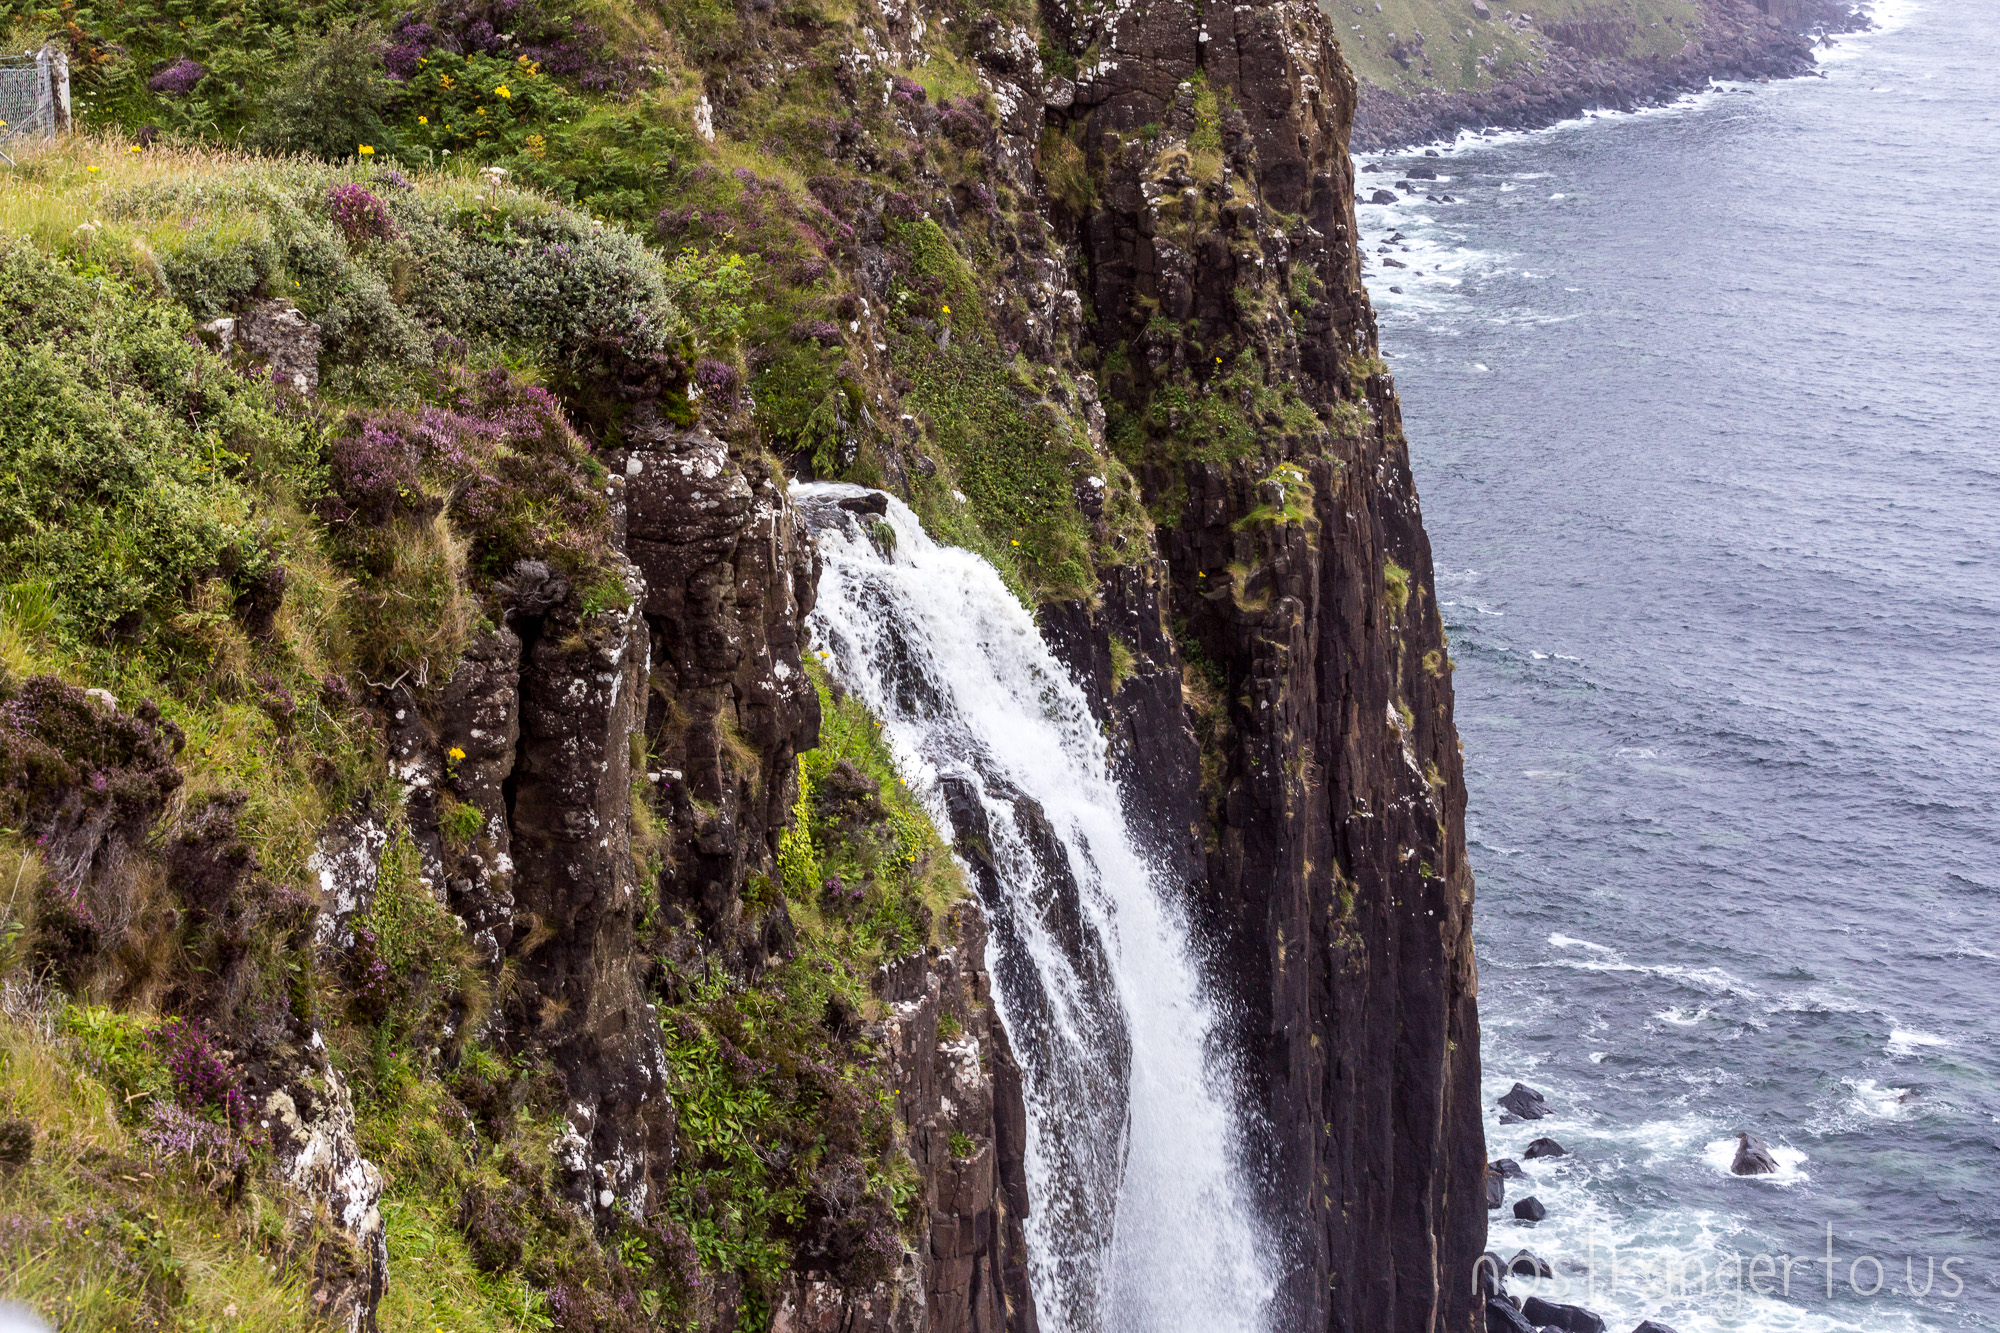 Mealt Falls in Skye, Scotland